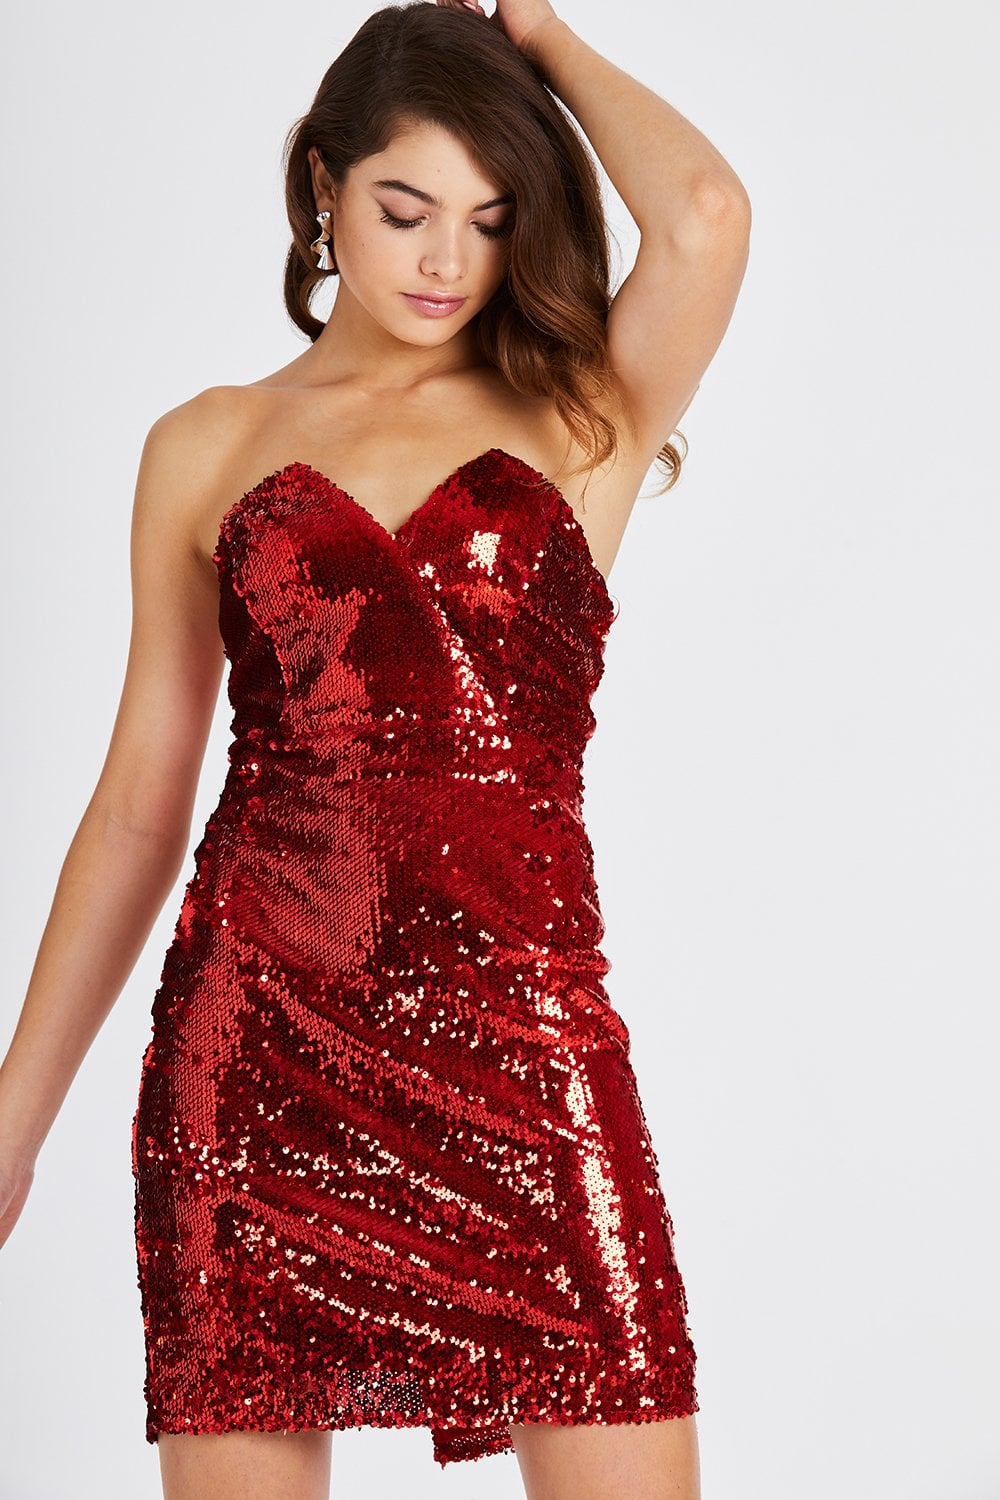 ac7d2dd86260 Girls on Film Bellerose Red Sequin Bodycon Dress - Girls On Film from  Little Mistress UK